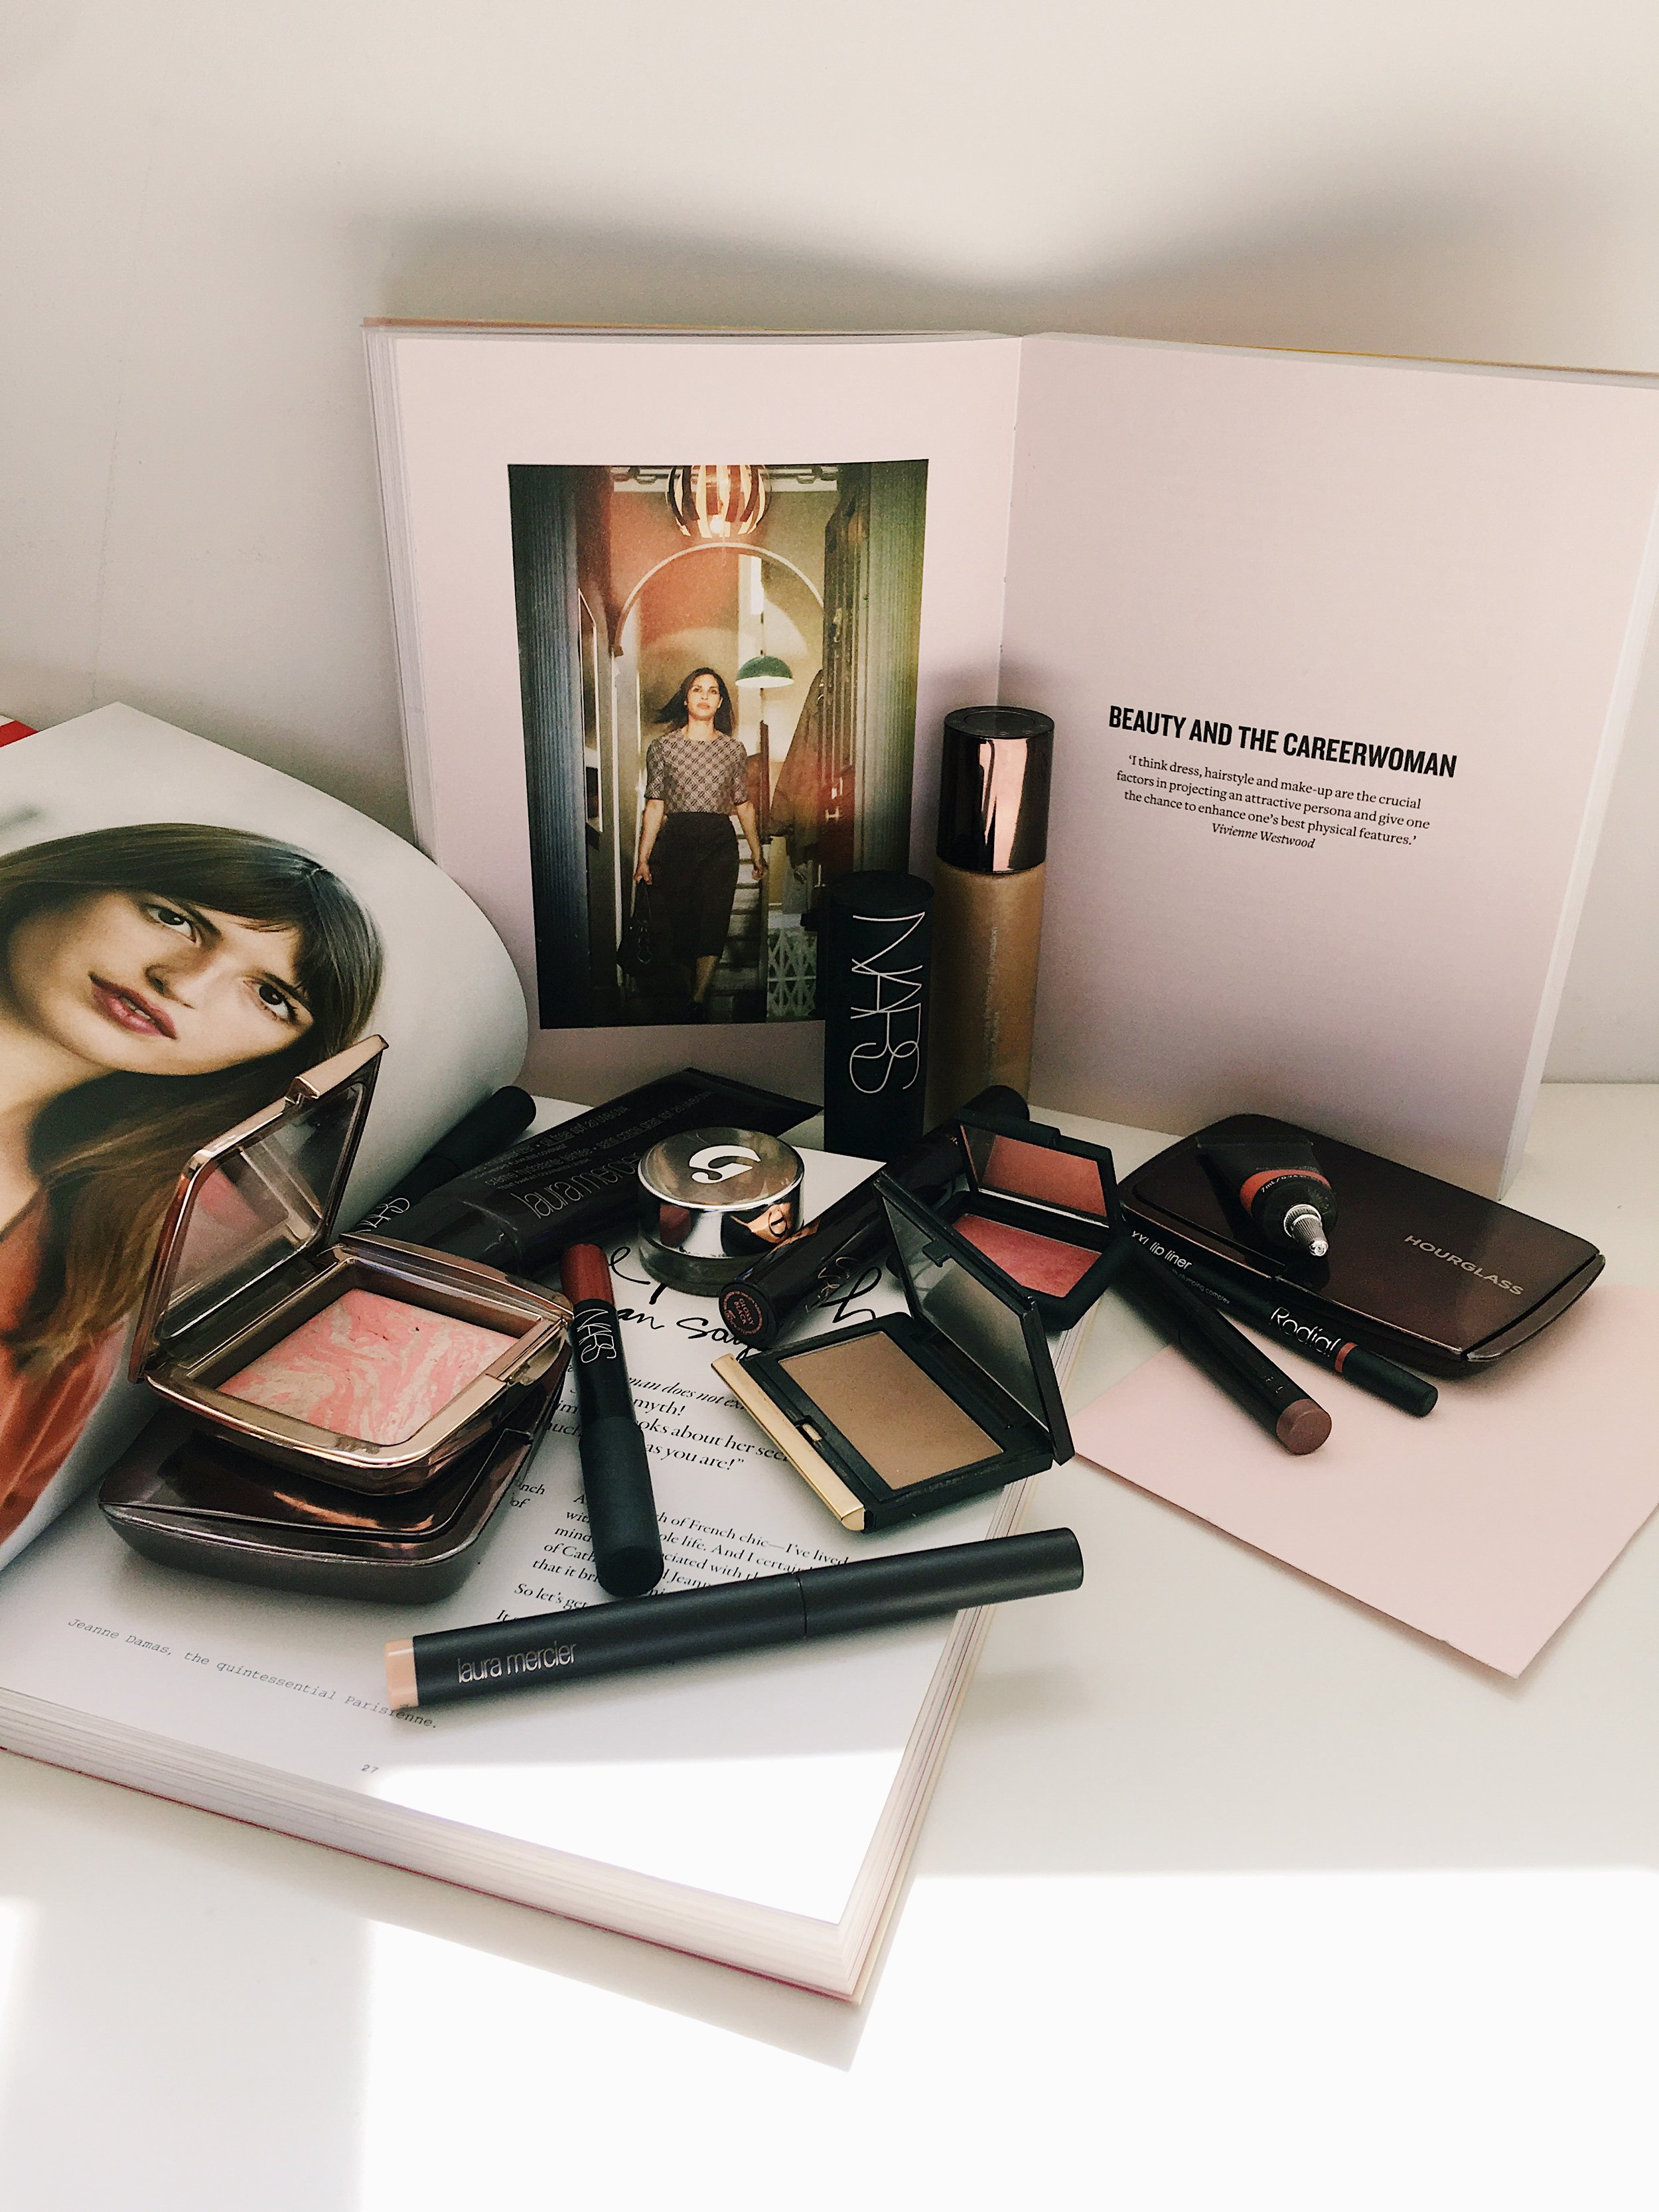 AMOUR OPHELIA - MAKEUP I CAN'T LIVE WITHOUT